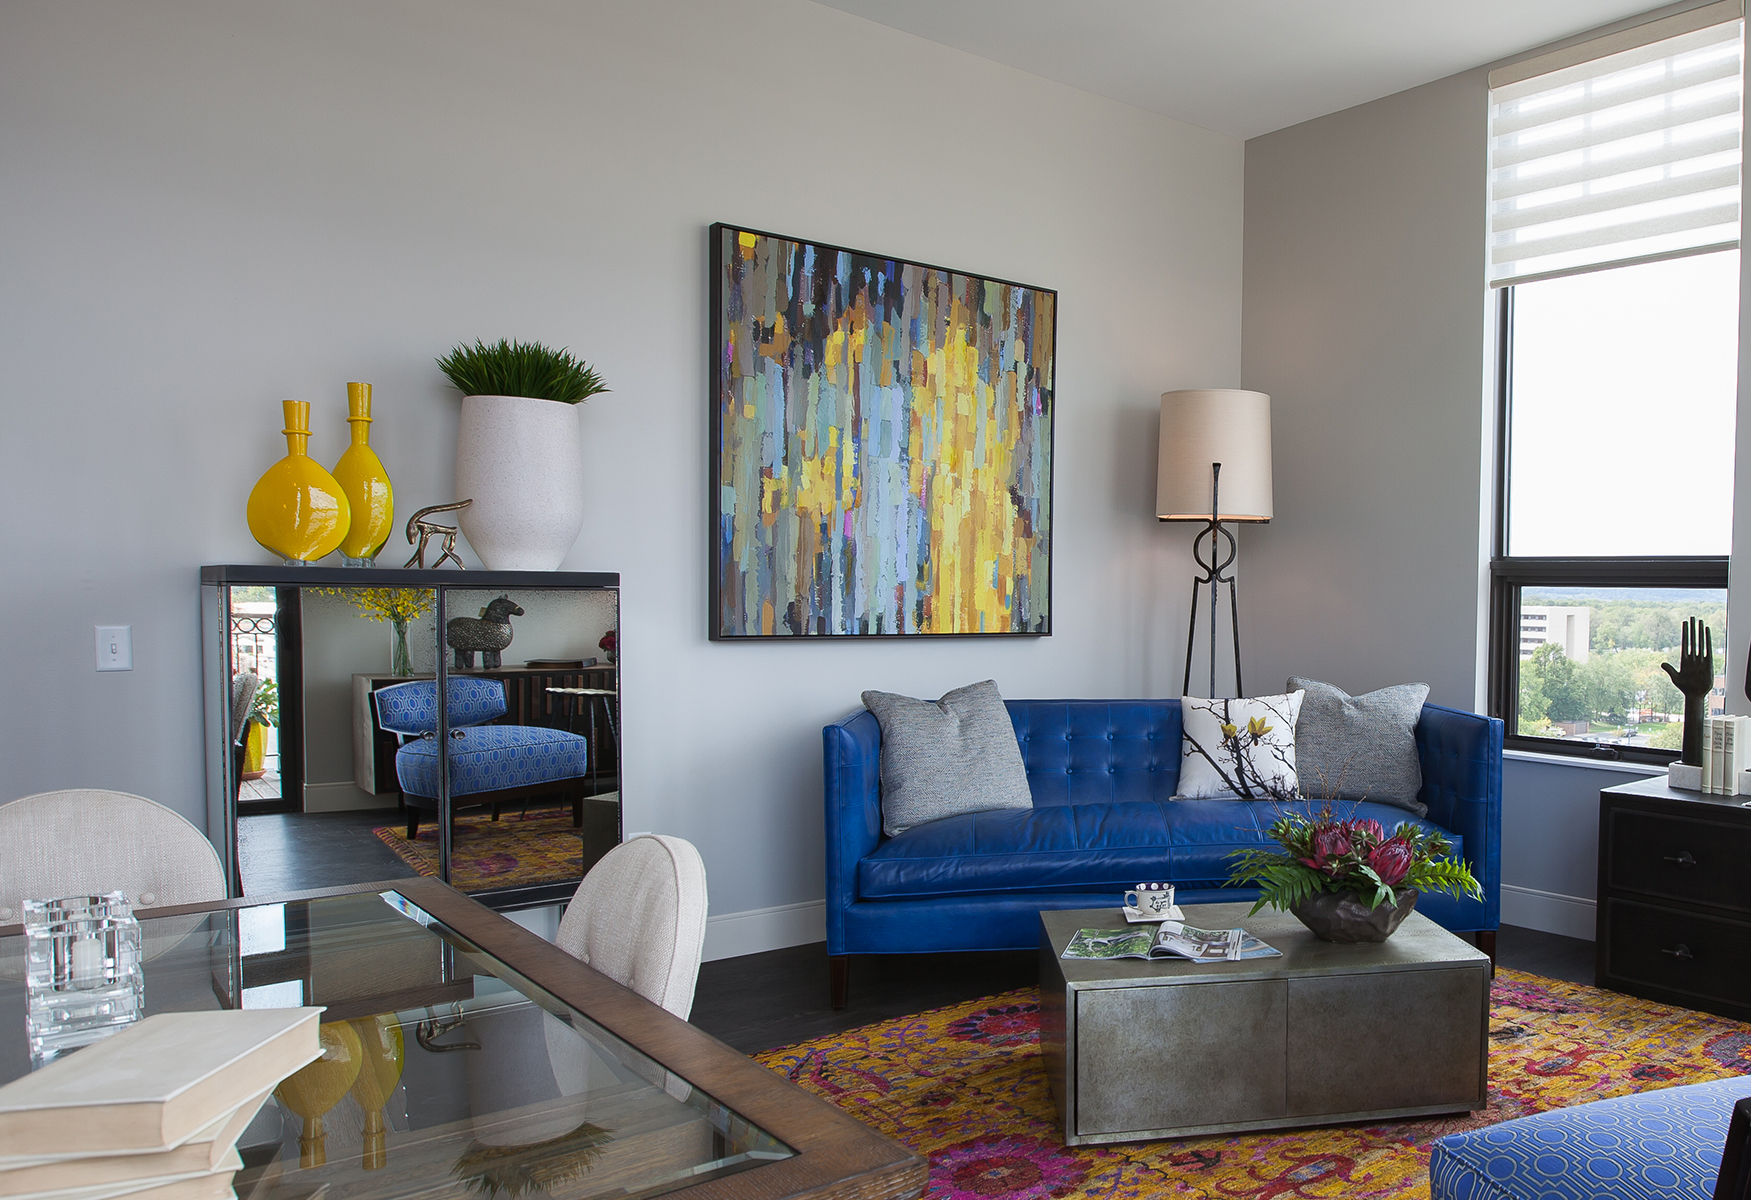 pmk photography - illumin8 image of living room work done for Colleen designs it